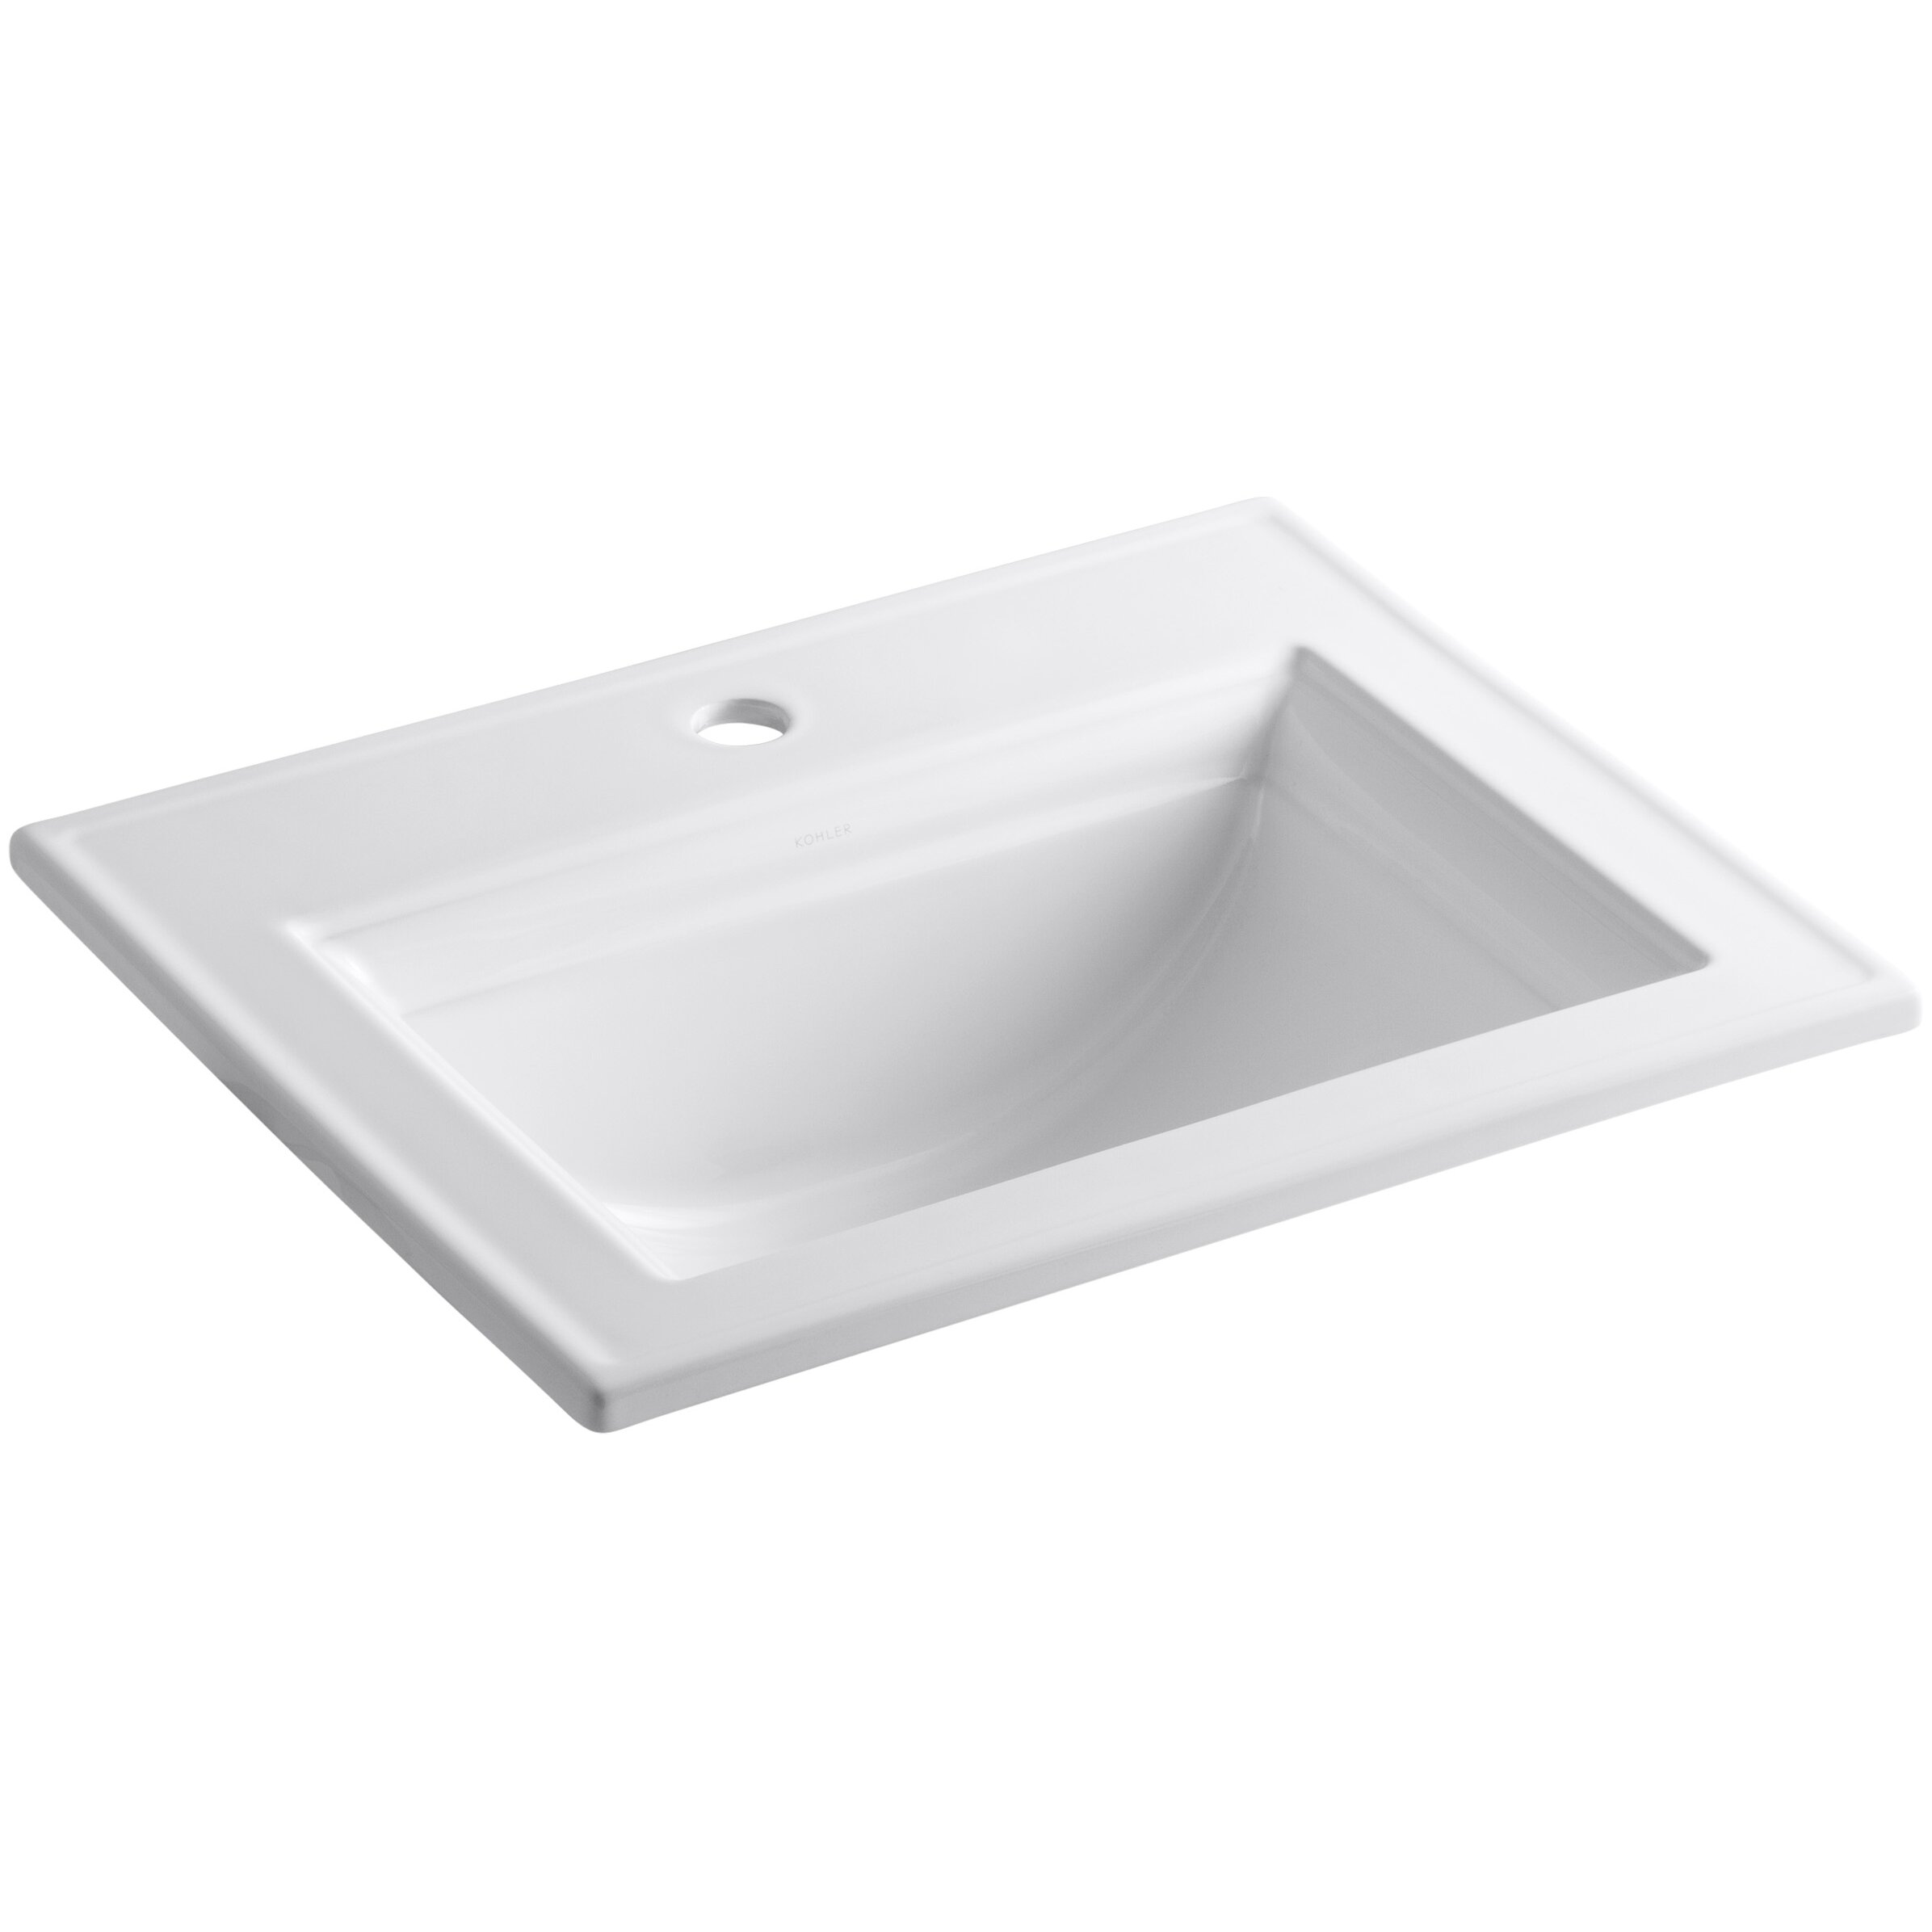 drop in bathroom sink with single faucet hole reviews wayfair